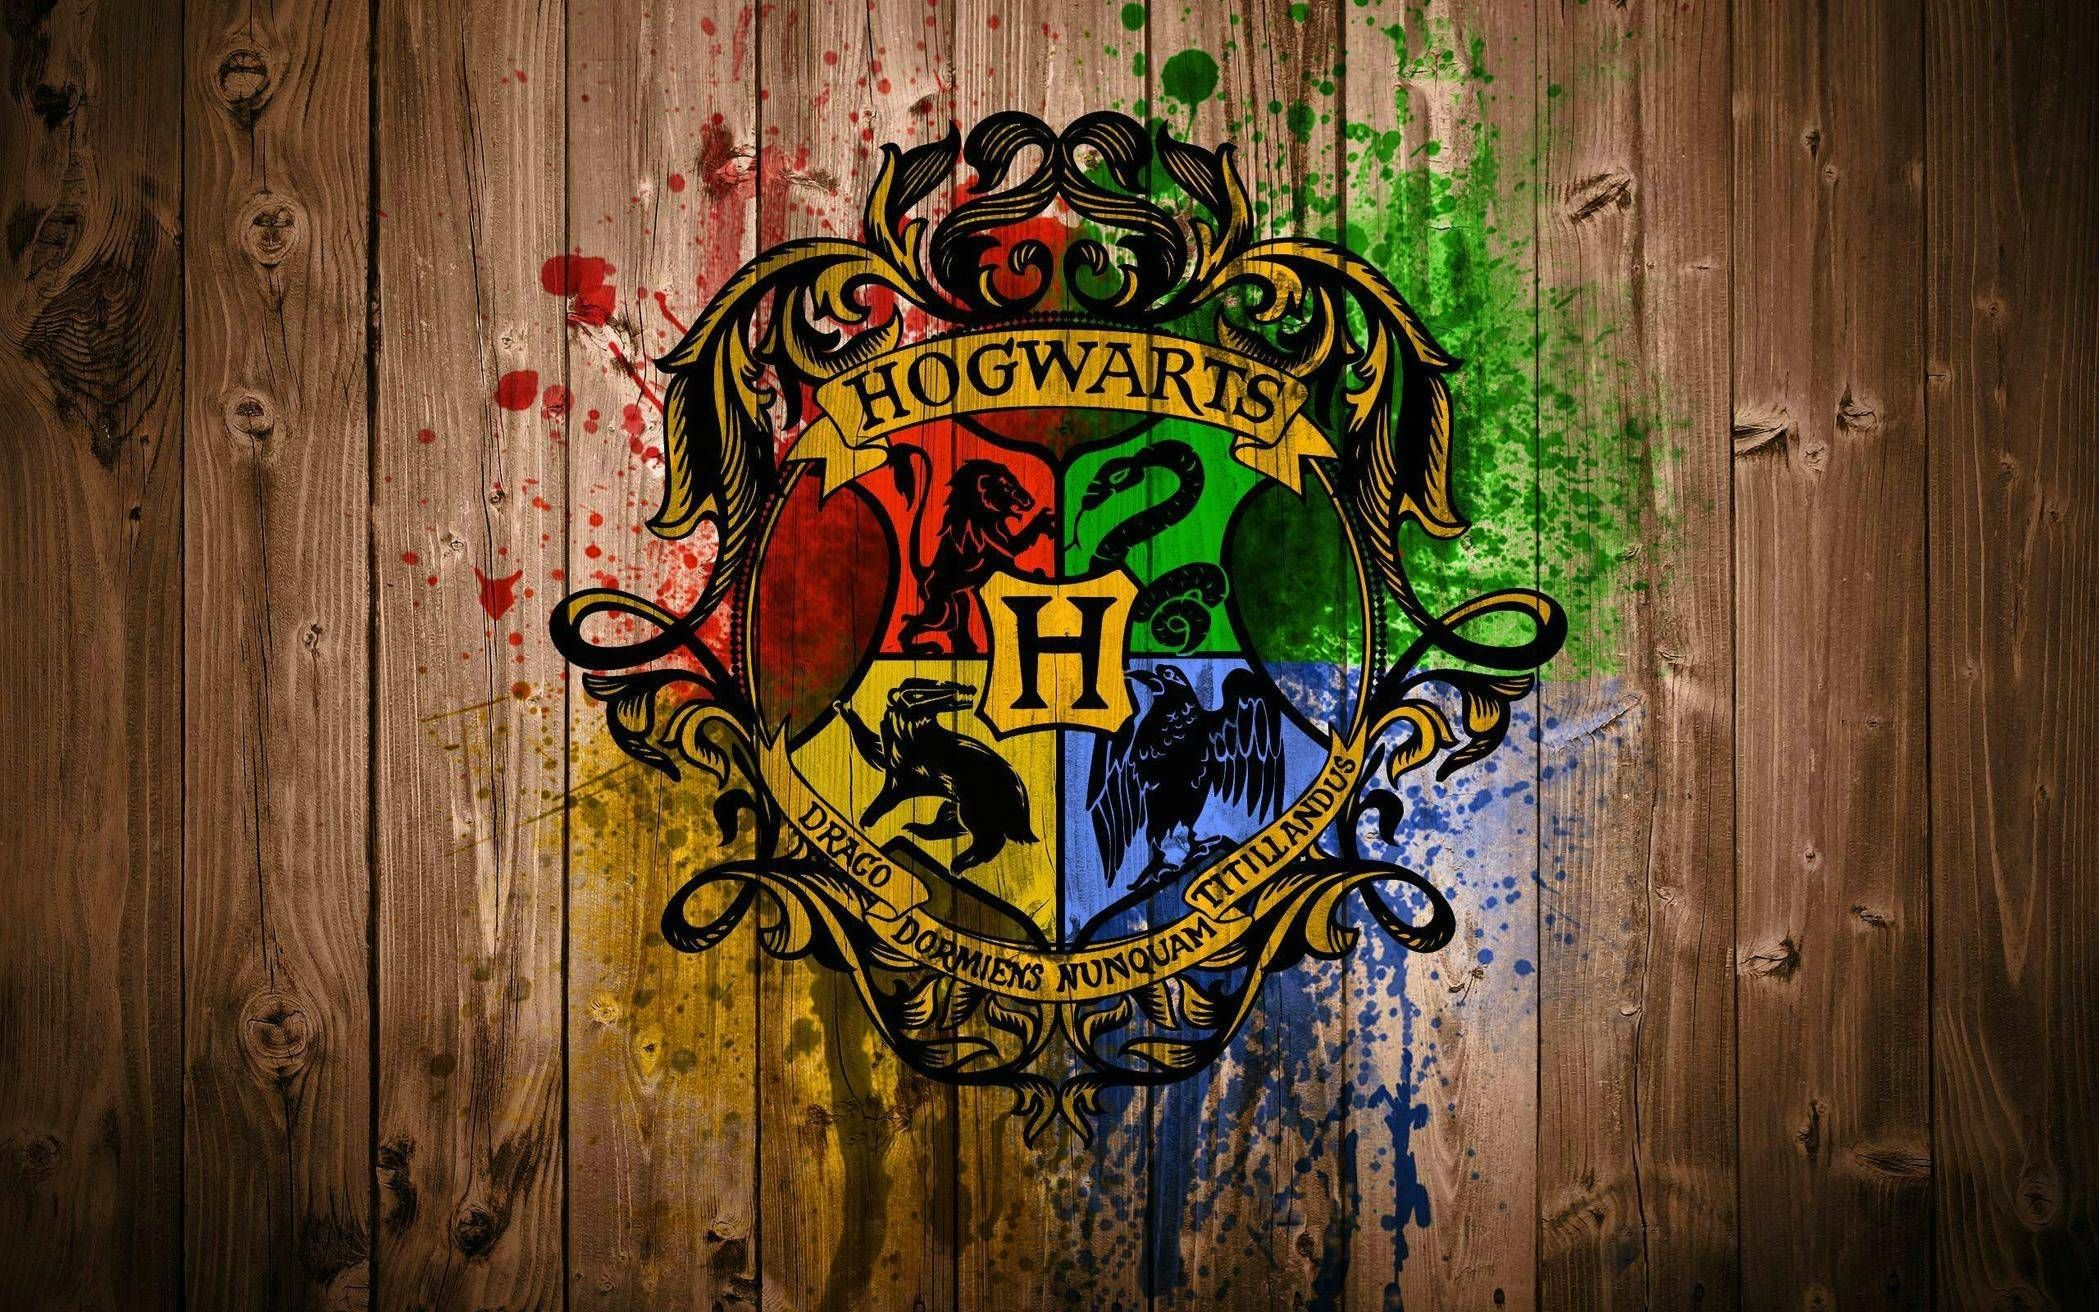 Slytherin Hogwarts Wallpaper Harry potter background